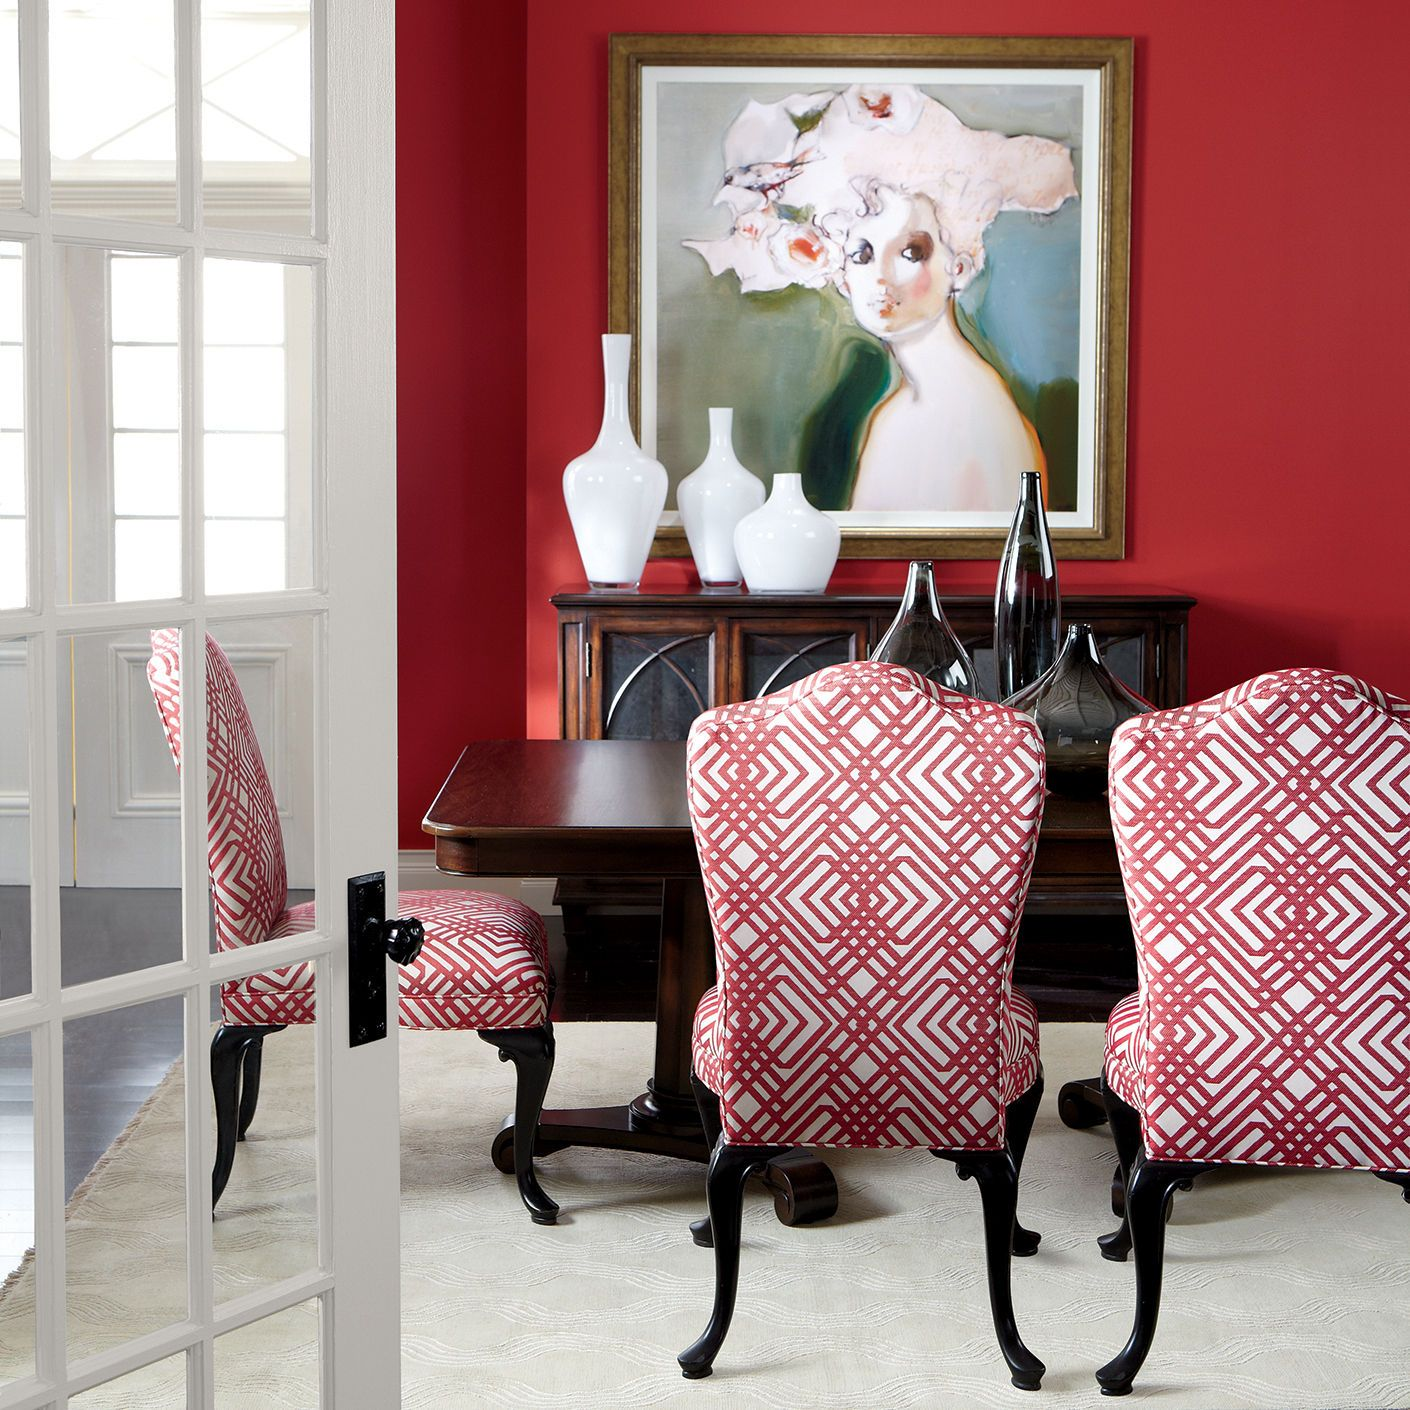 Edwin Dining Chair Arm Host Chairs Bright Dining Rooms Decor Red Dining Room #red #living #room #tables